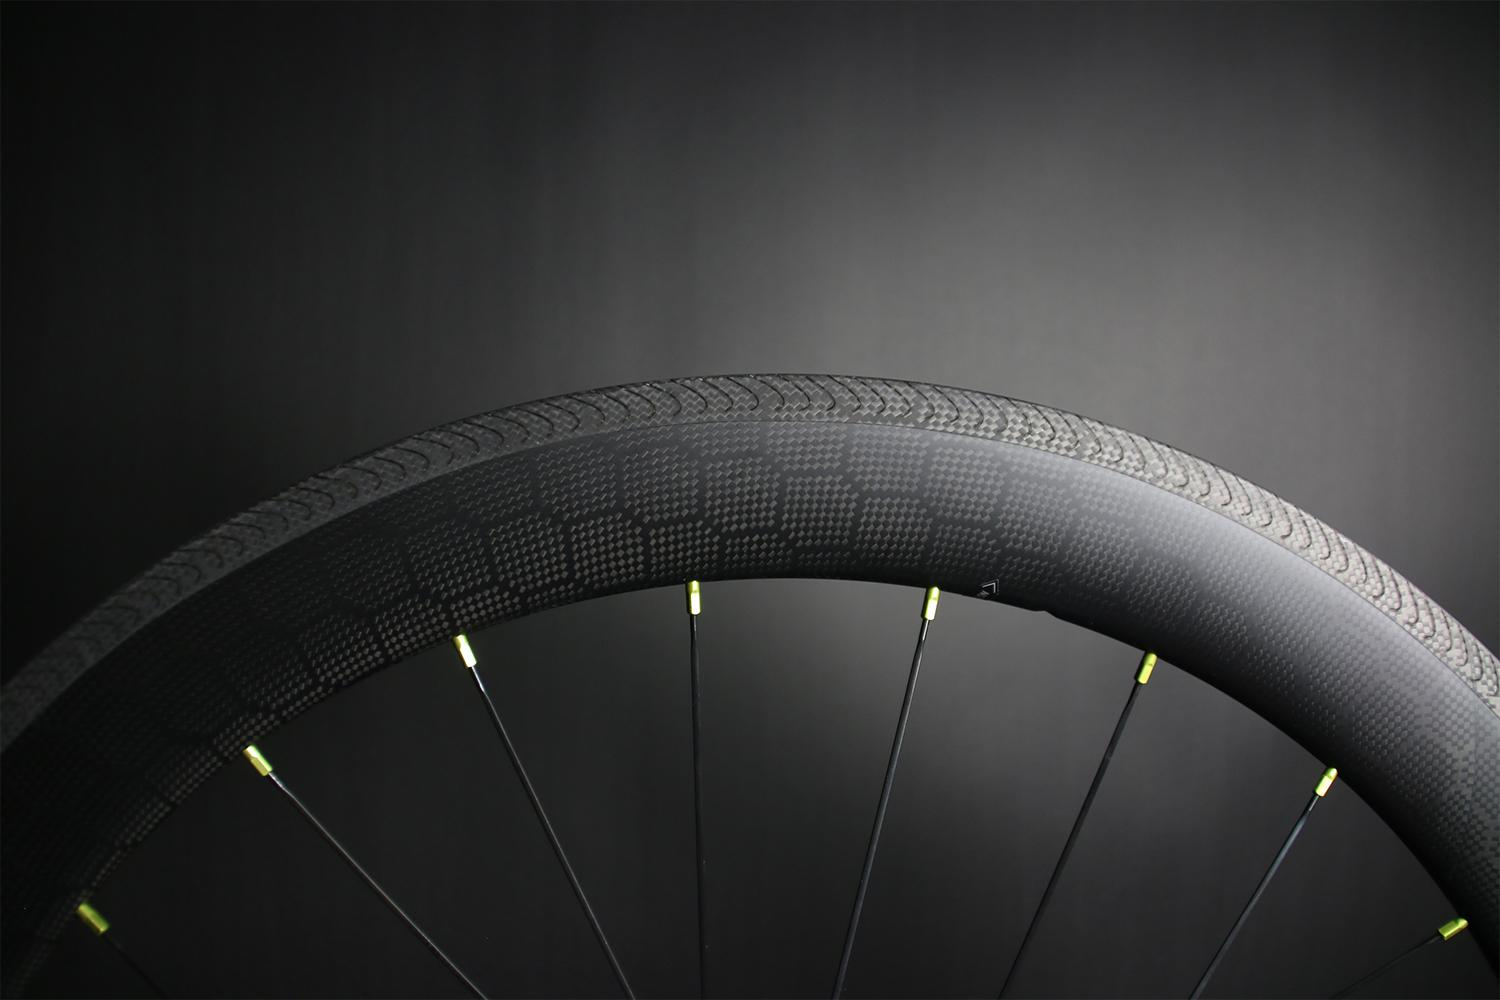 sapim-lime-aluminum-spoke-nipples-on-carbon-wheel